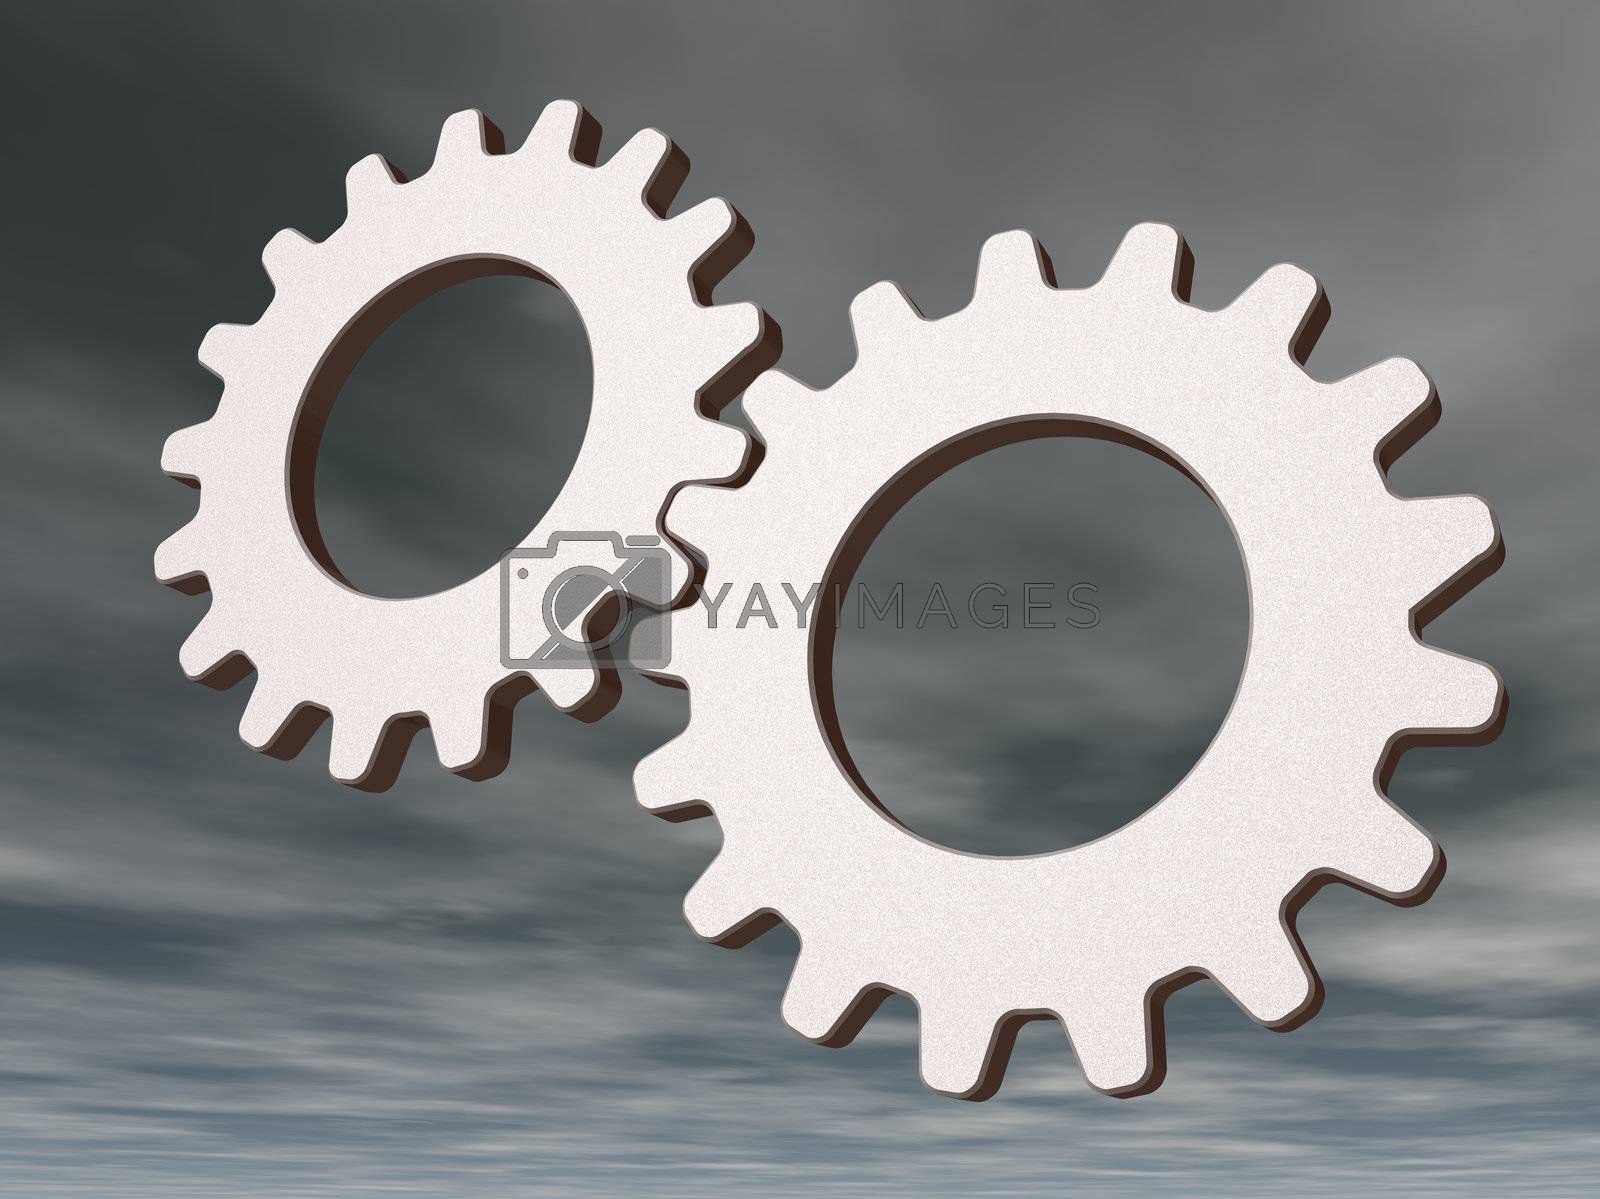 Royalty free image of gears by drizzd